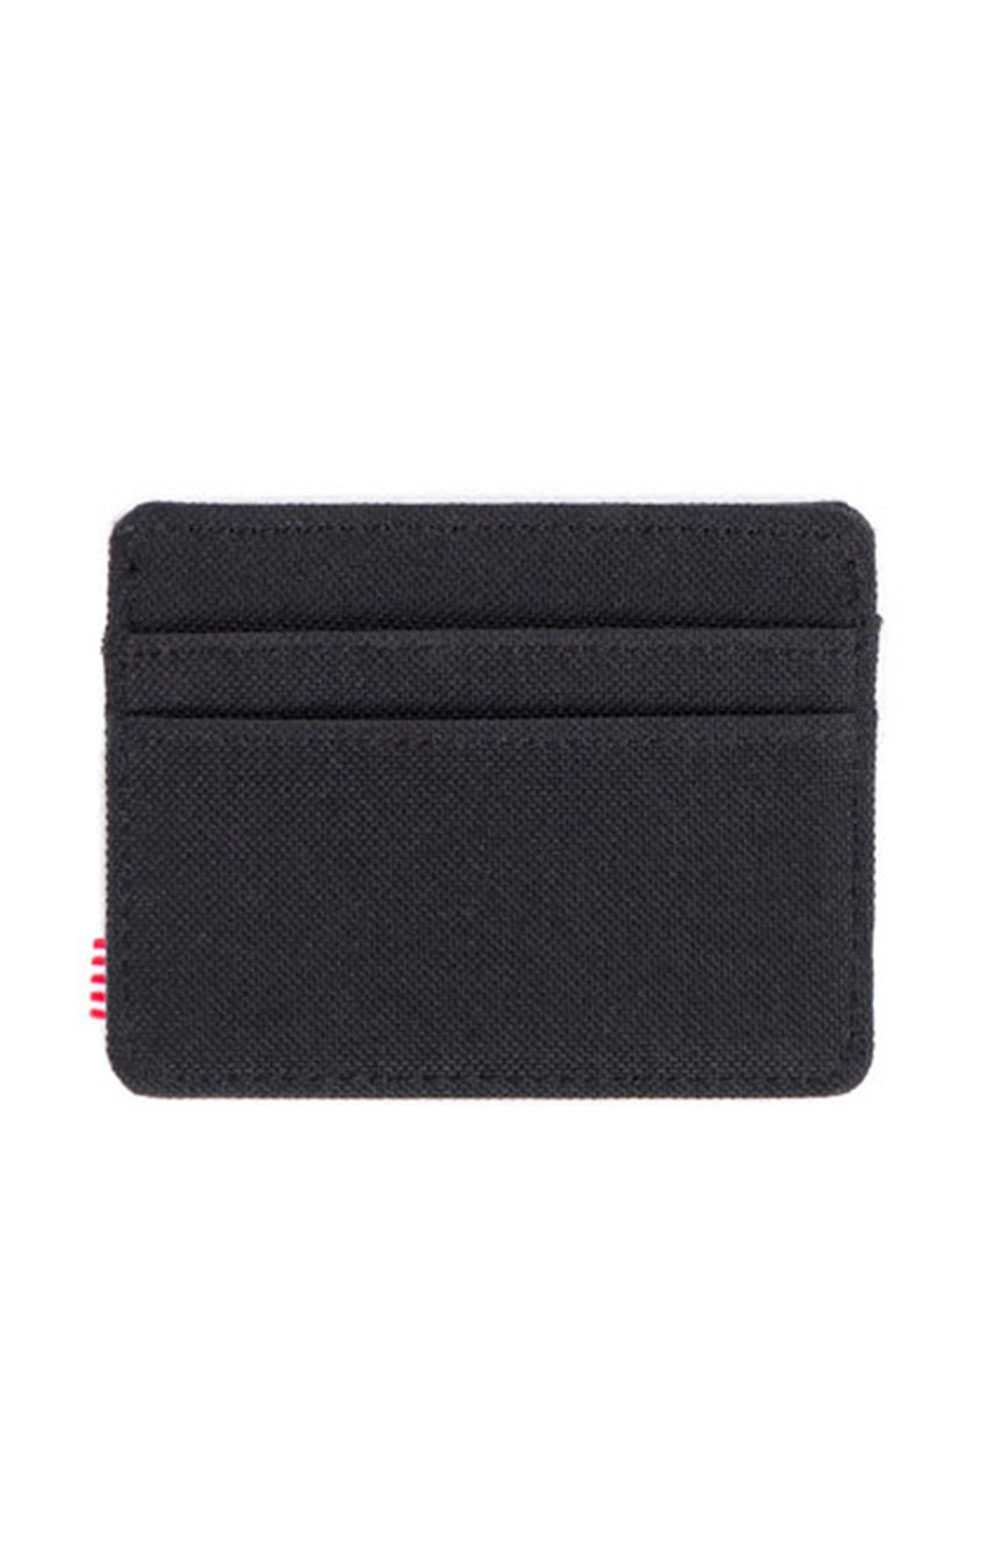 Charlie Wallet - Black 2